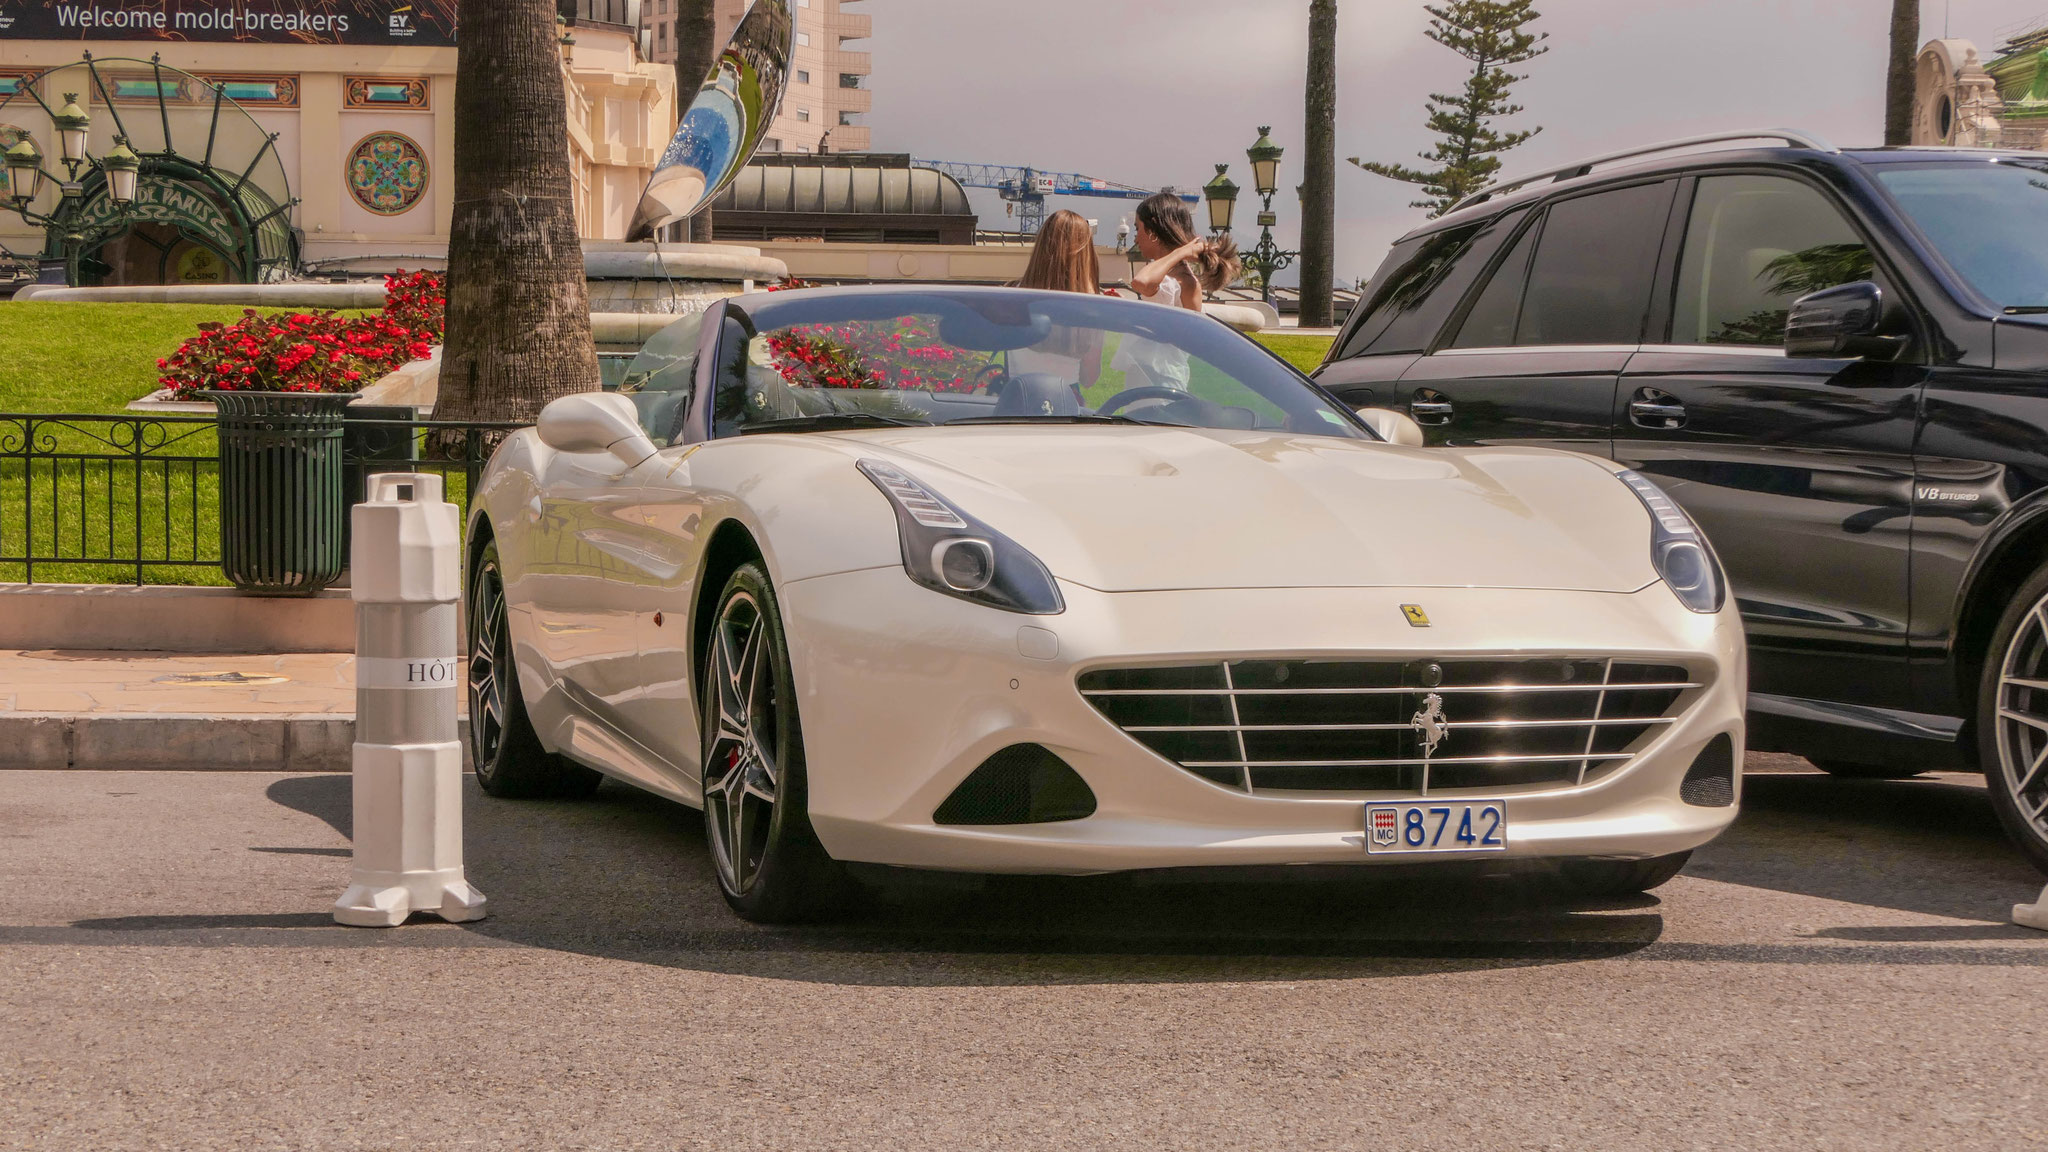 Ferrari California T - 8742 (MC)